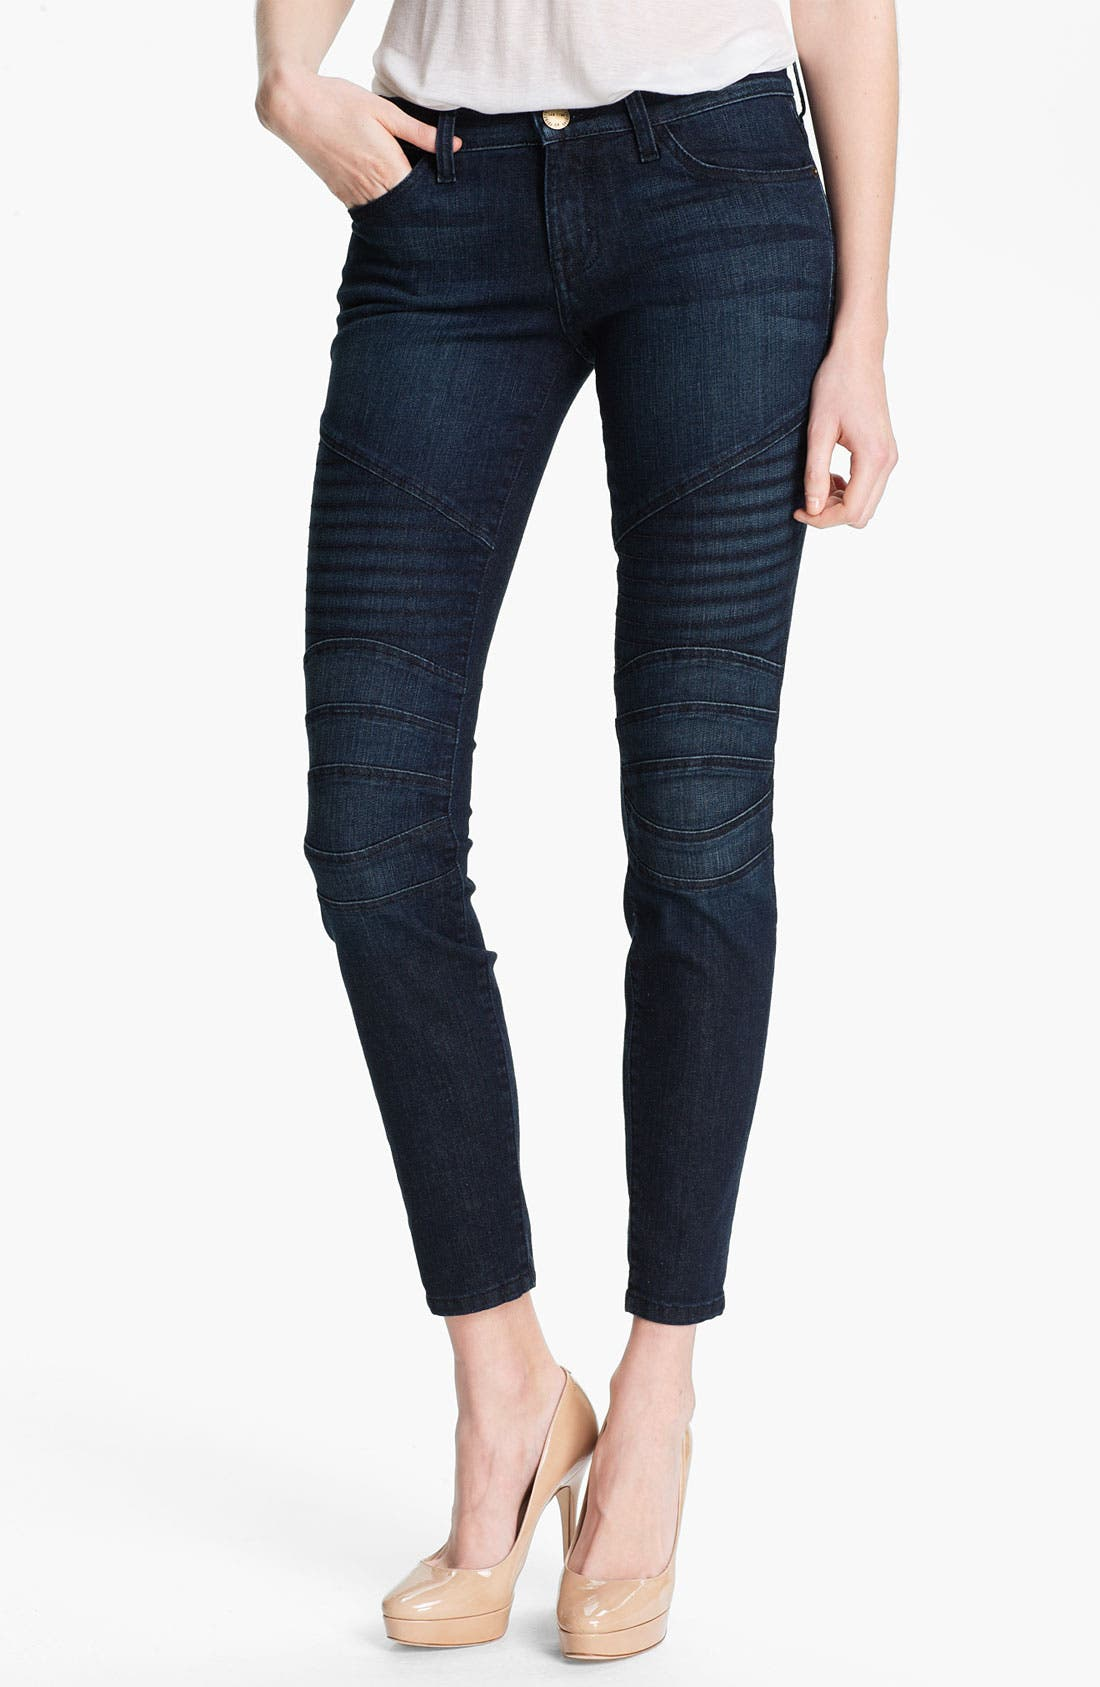 Alternate Image 1 Selected - Current/Elliott 'The Moto' Skinny Ankle Jeans (Raleigh)